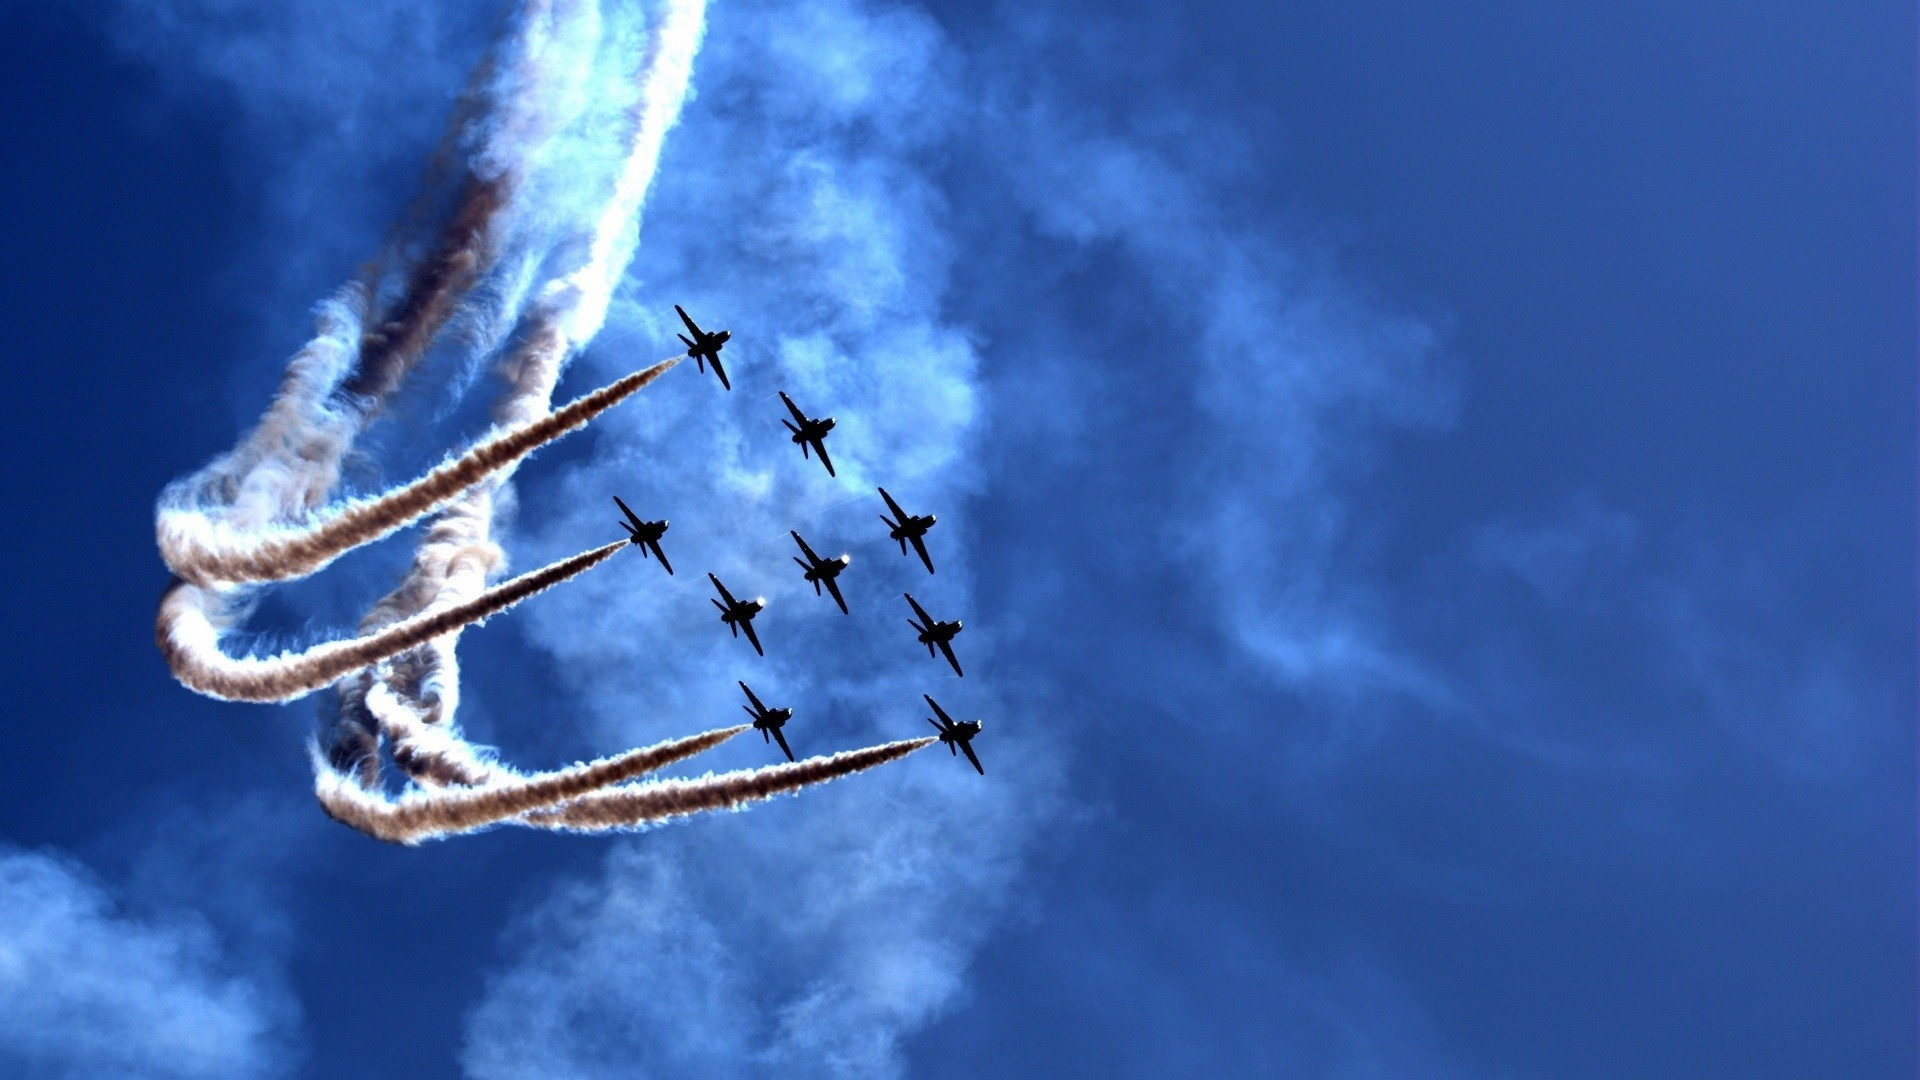 HDQ Creative Airforce Pictures, 1920x1080 px, Wayne Edelman